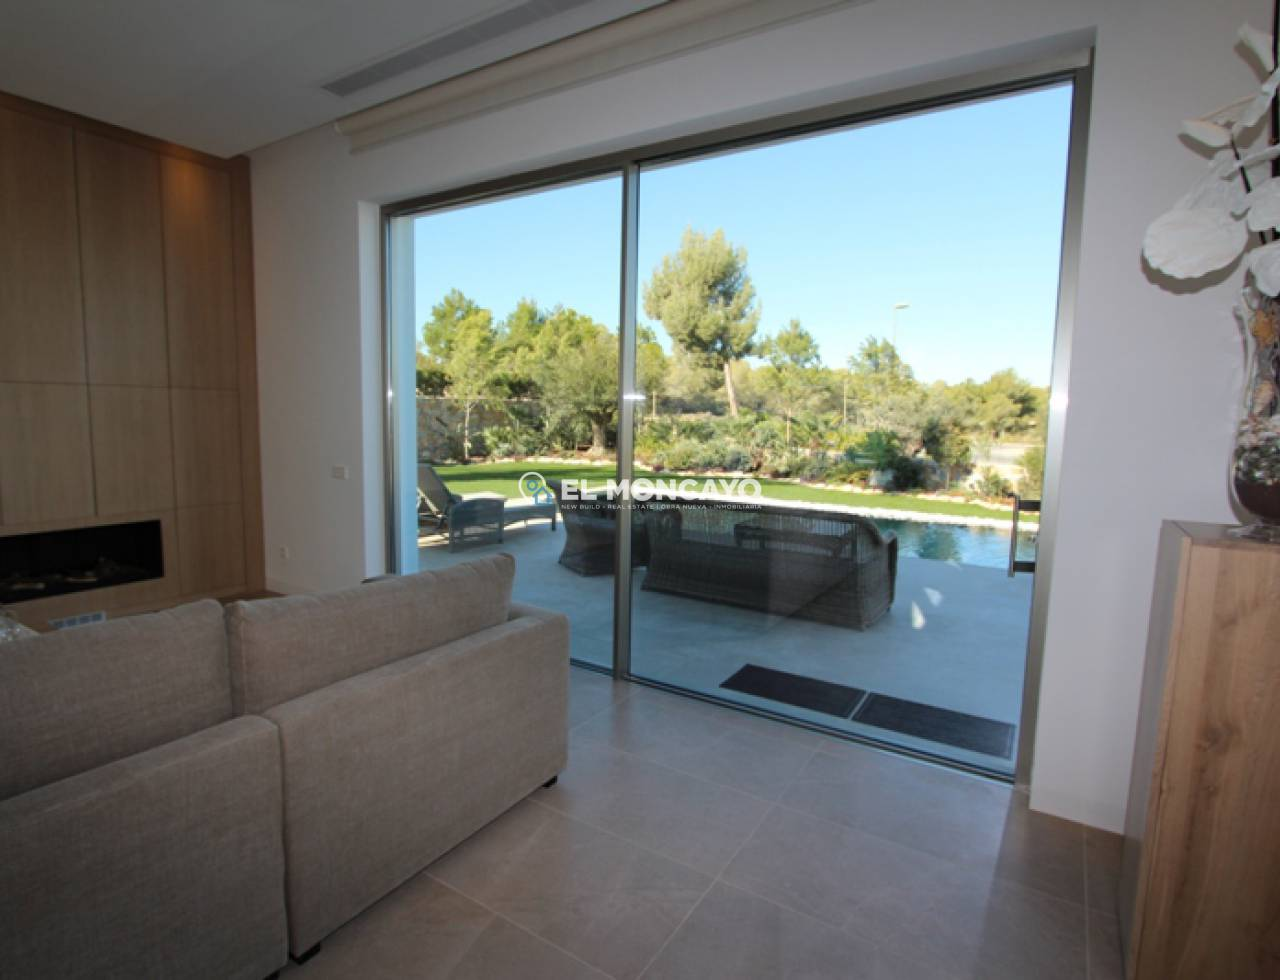 New build villa in Orihuela Costa - Villamartin - Golf course (11)